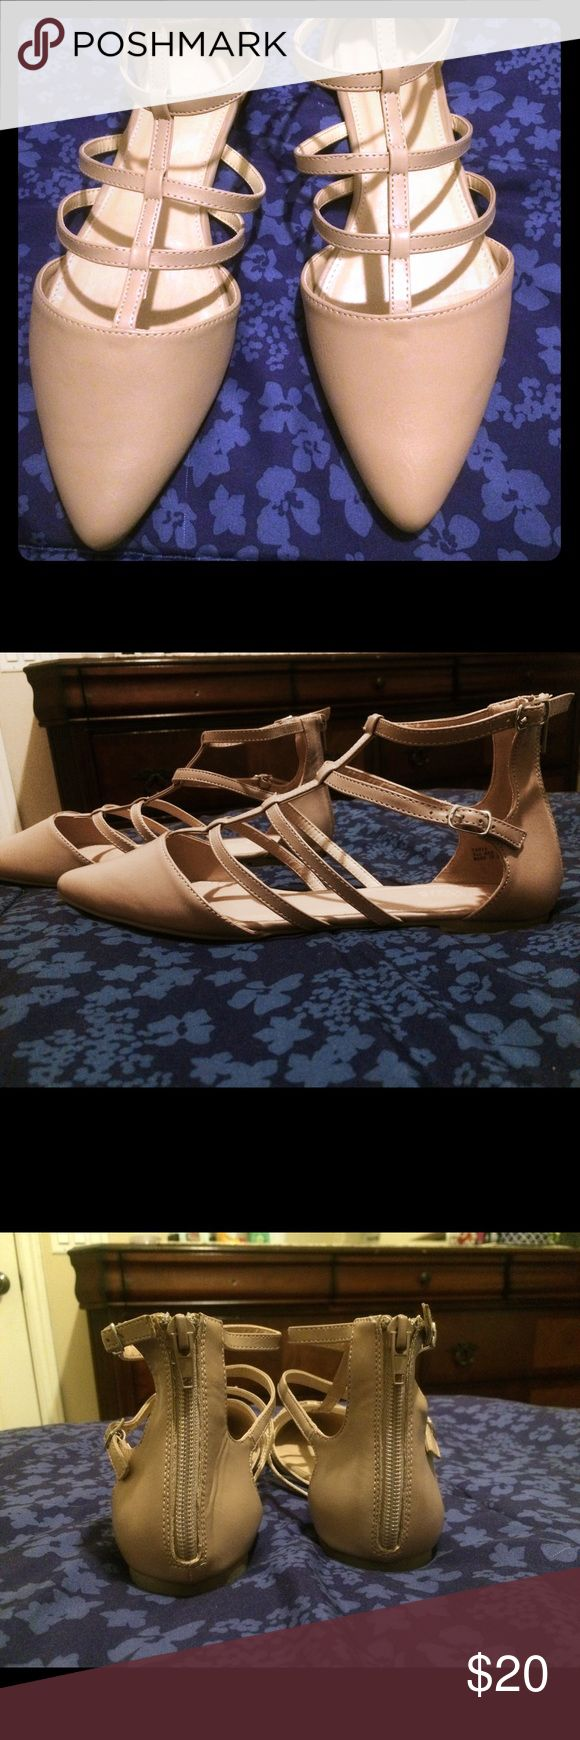 Nude pointed flats with straps Nude pointed flats are new without tags. Never worn. Size 9 Shoes Flats & Loafers